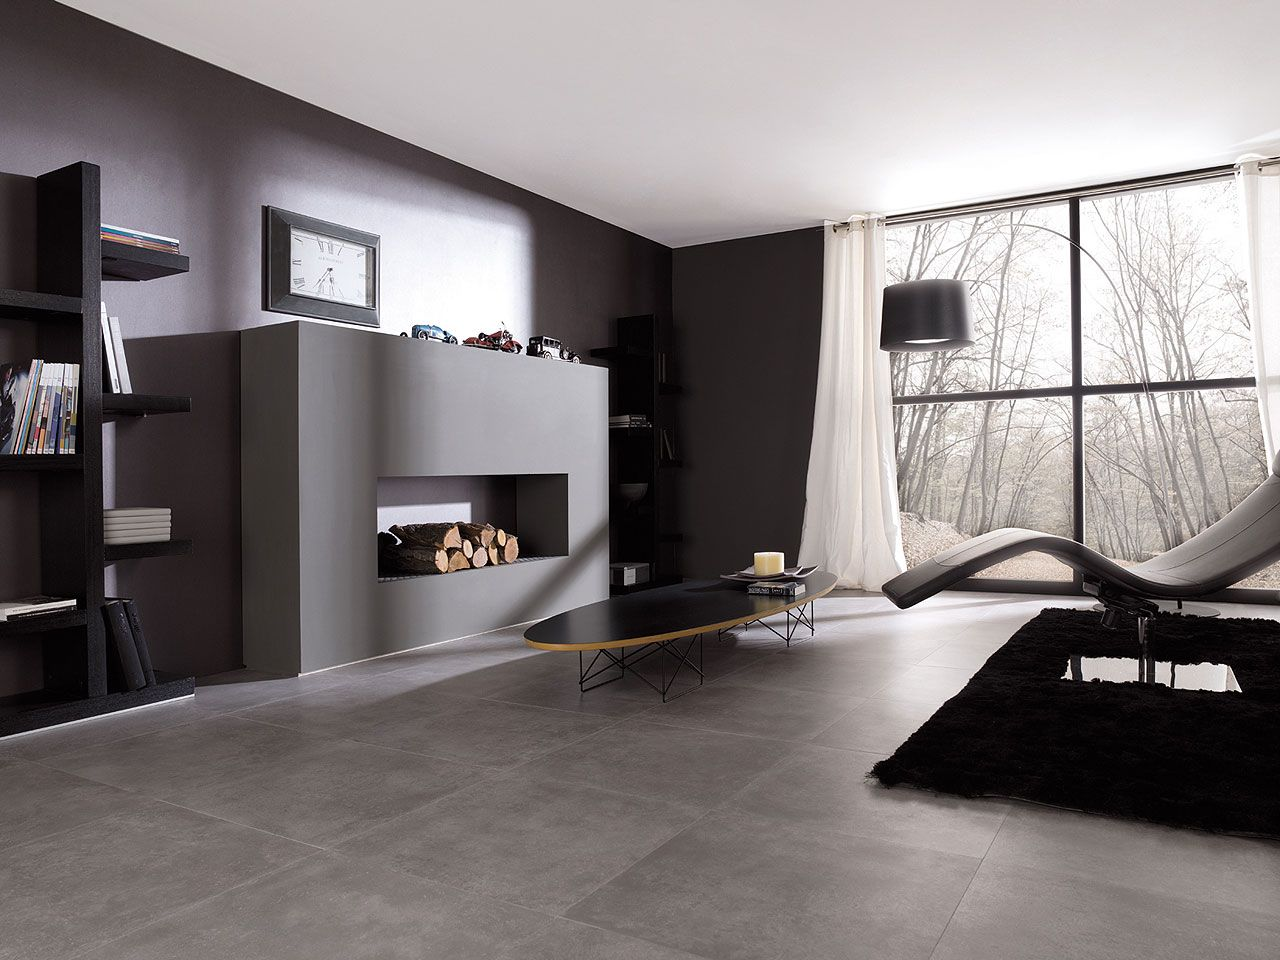 Rhin gris 596 x 596 cm microcemento pinterest stone and fireplace but a little wider and shorter porcelanosa modern floor tiles san francisco by porcelanosa usa dailygadgetfo Images